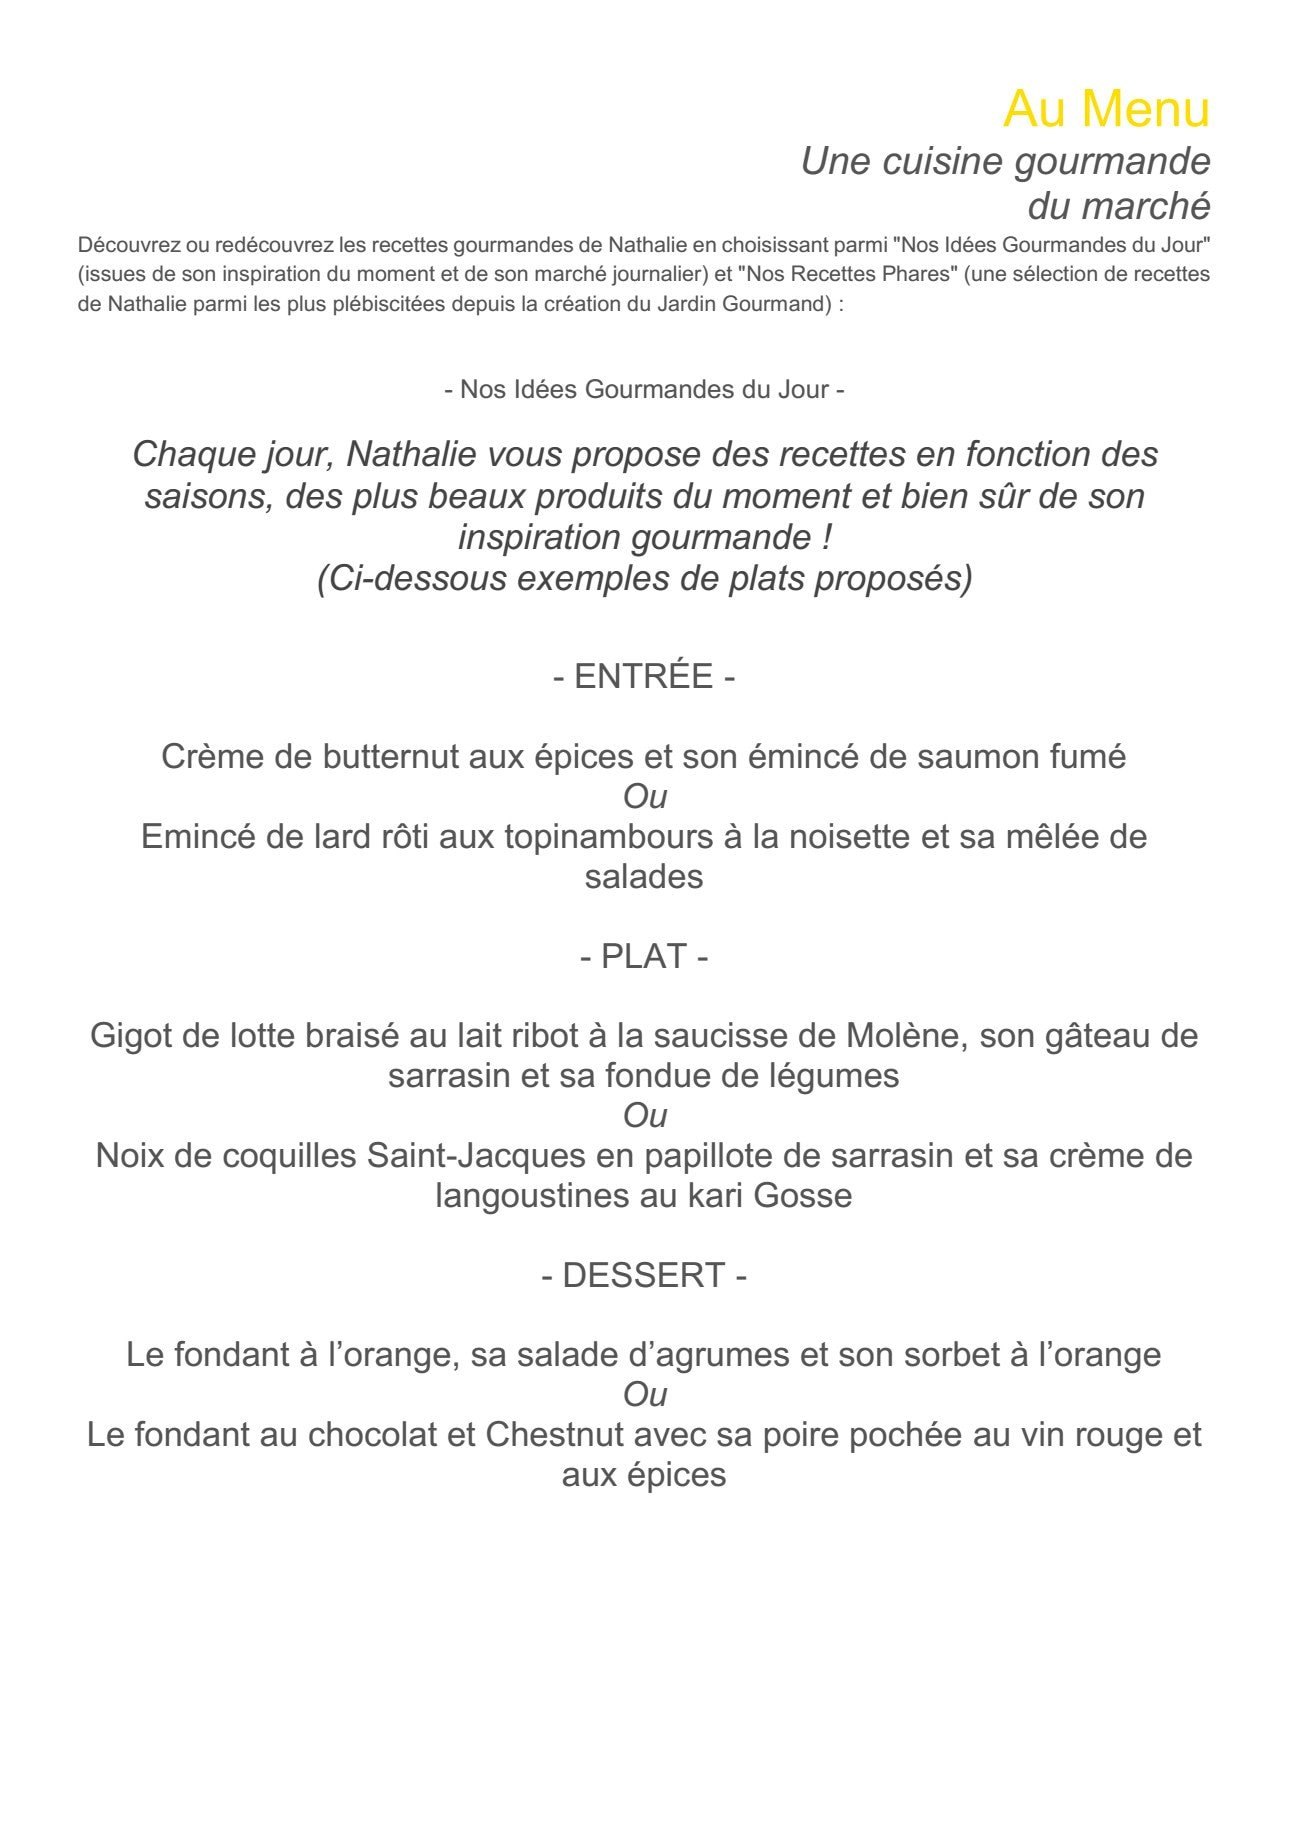 Le jardin gourmand lorient carte menu et photos for Restaurant le jardin gourmand craponne